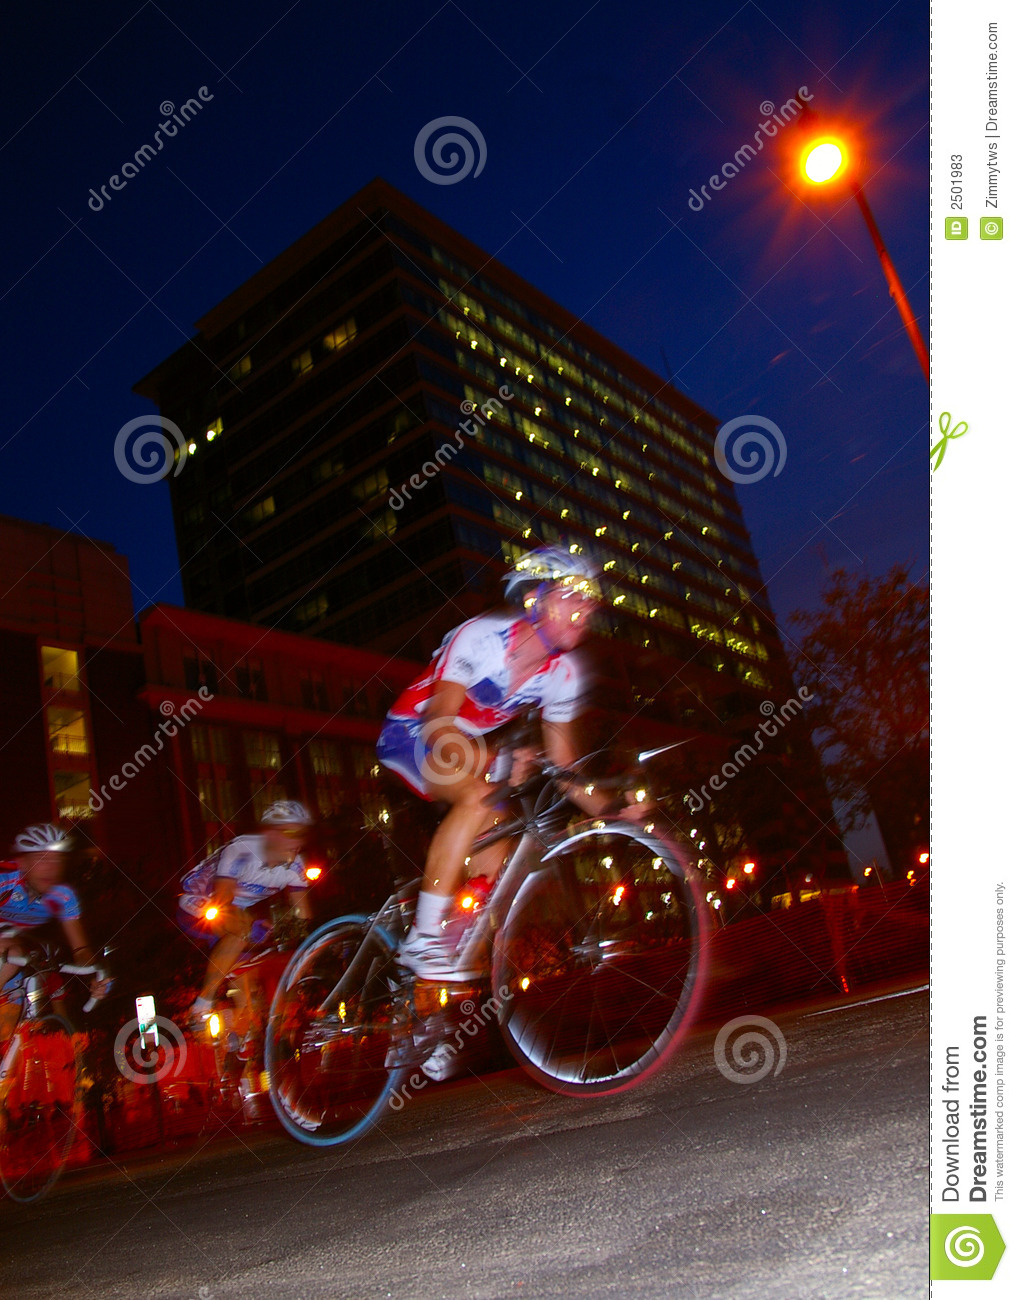 Bike Racing Stock Photos